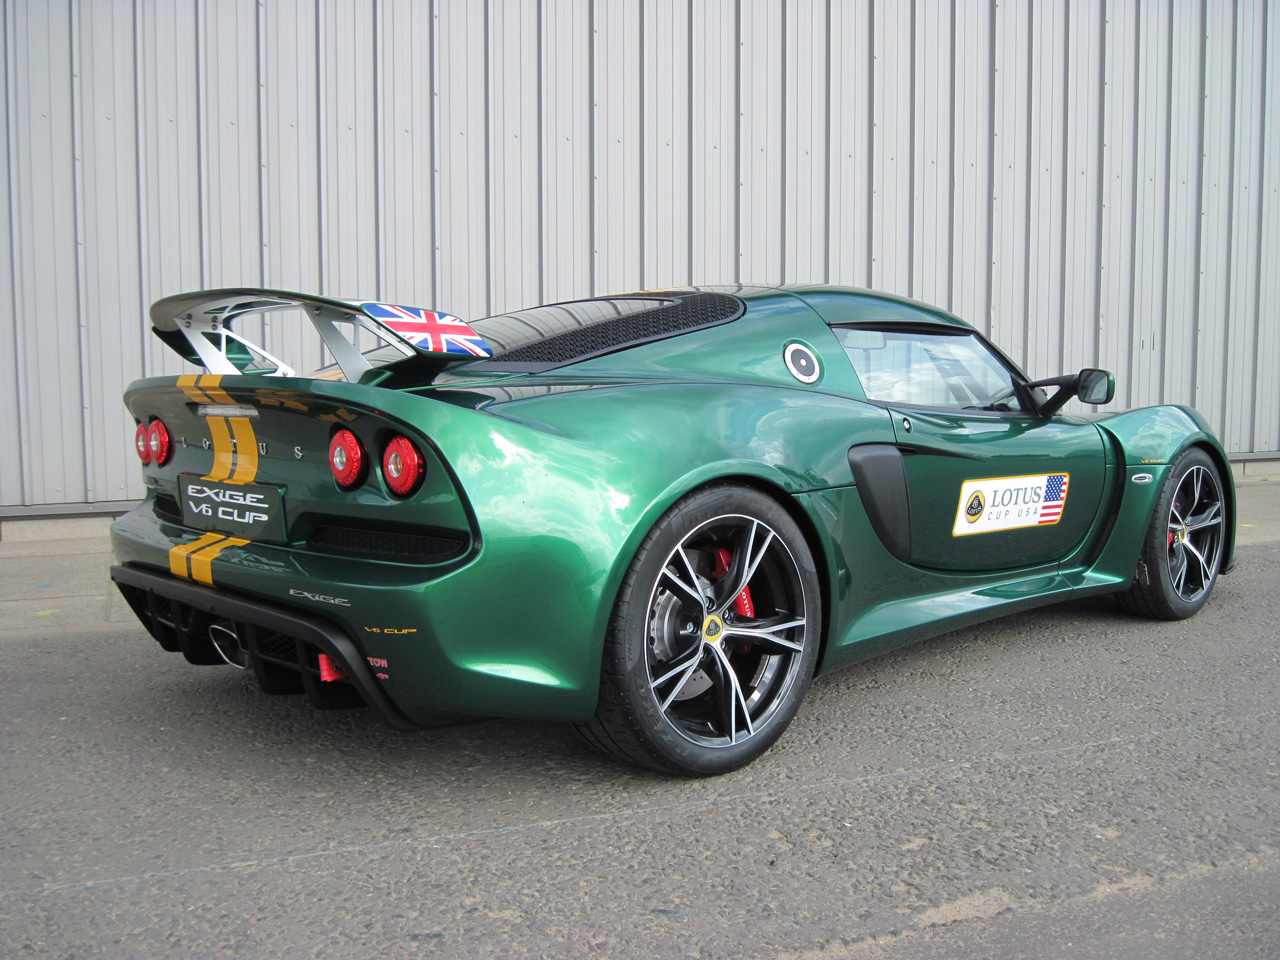 lotus announces exige v6 cup racer autoblog. Black Bedroom Furniture Sets. Home Design Ideas